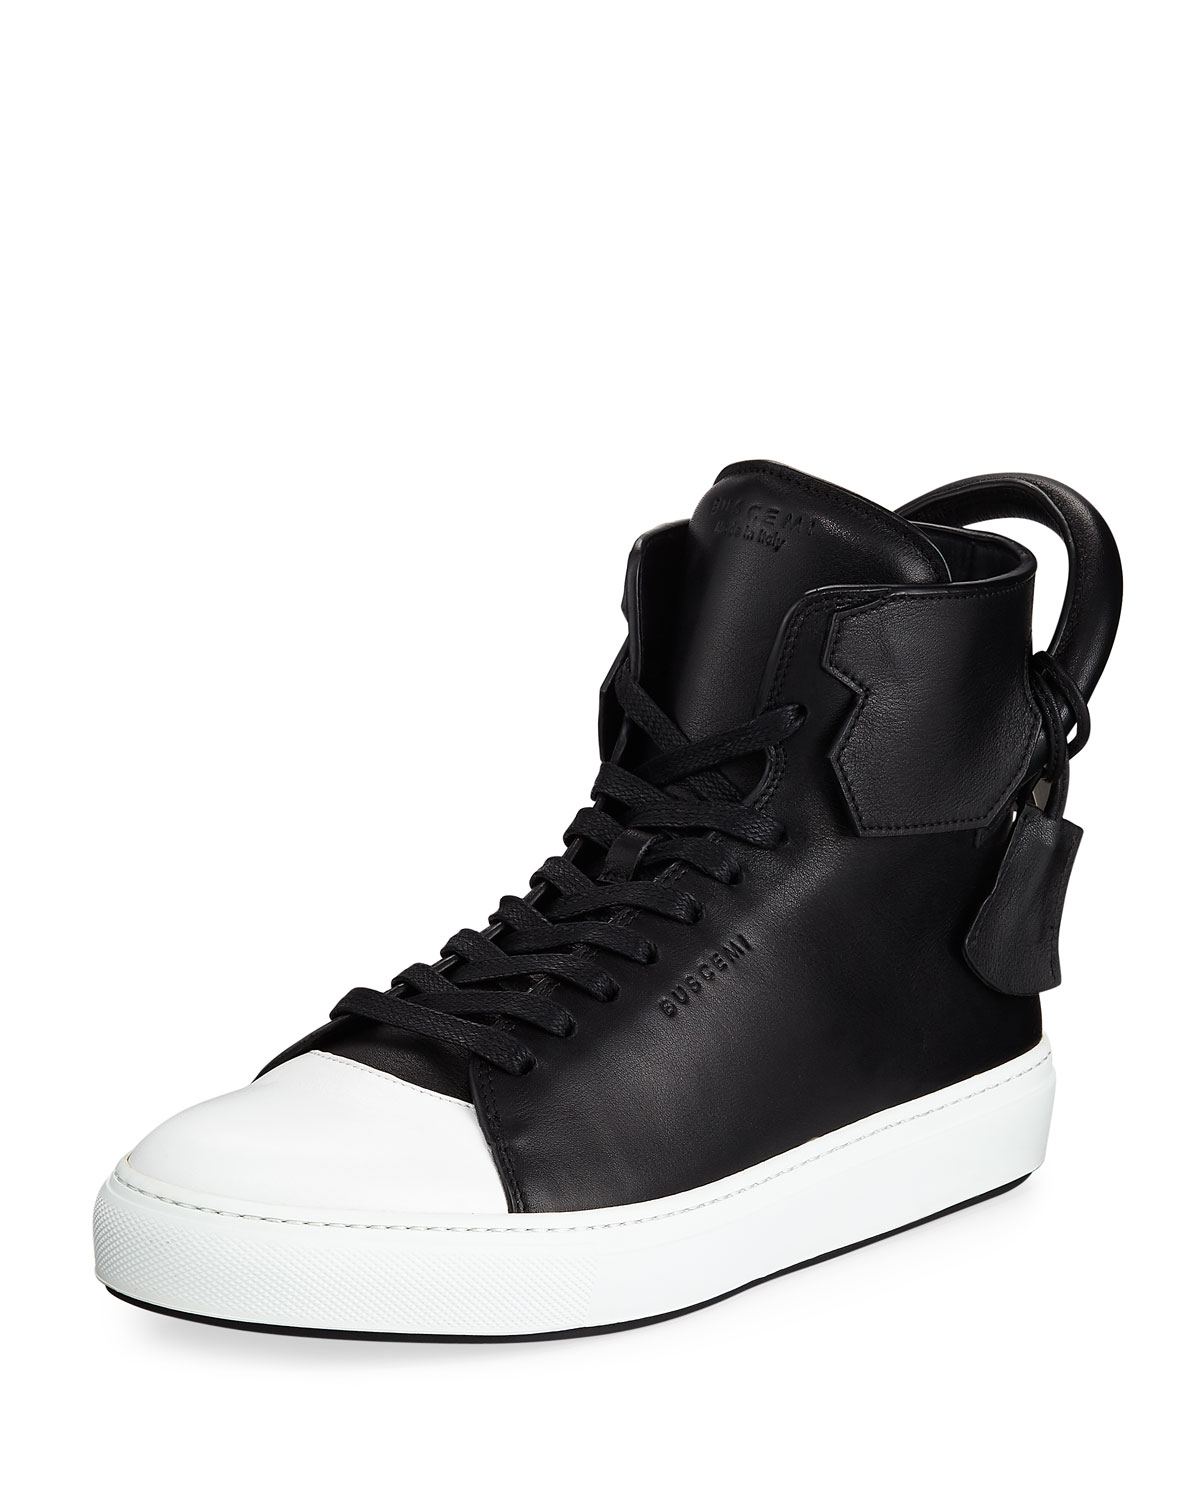 Buscemi Men s 125mm Leather High-Top Sneakers 0ad1f44fda1c